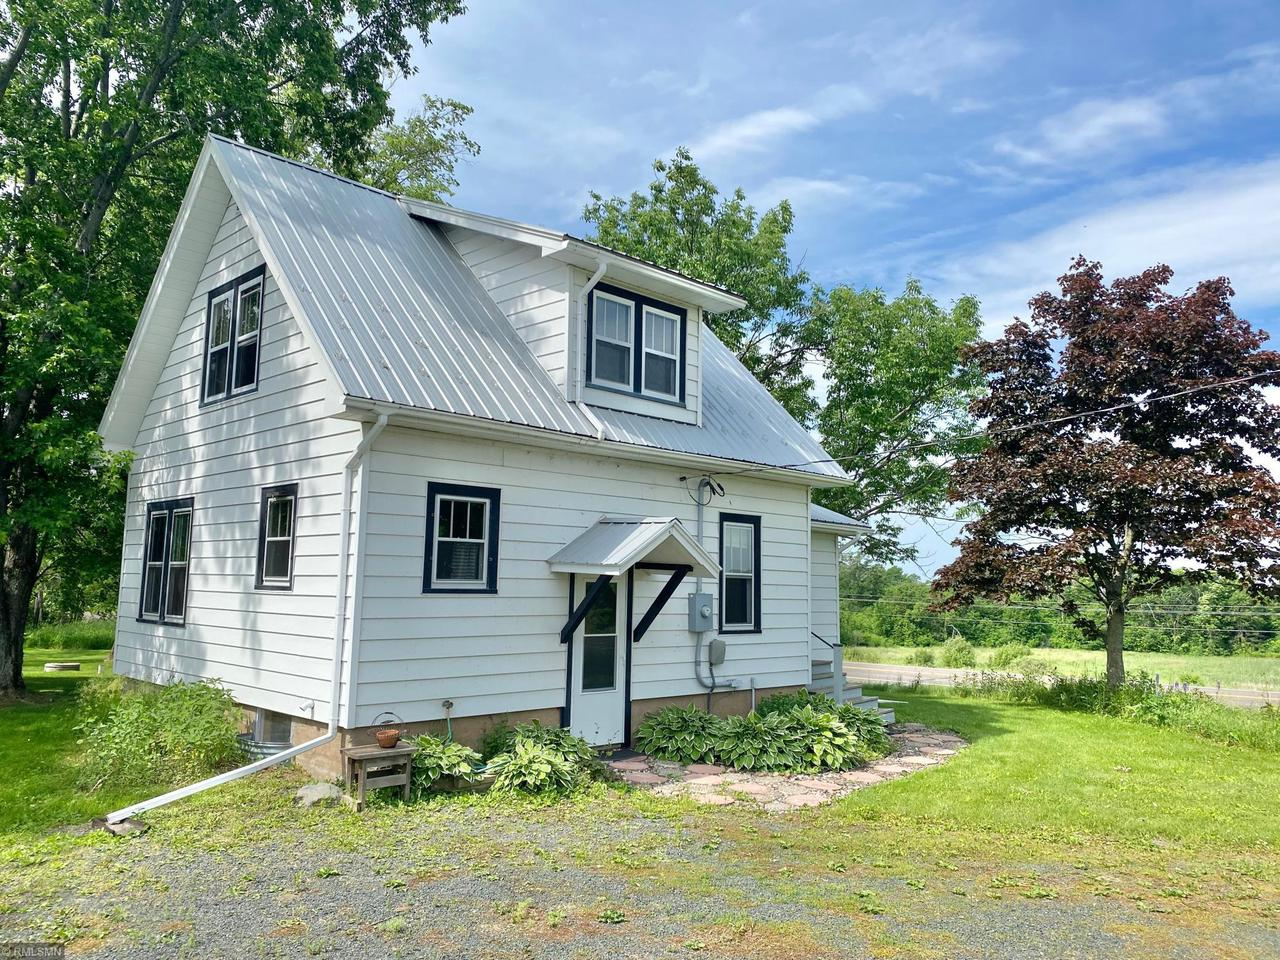 2 bedroom, 1 bath home on 10 acres. Metal Roof , new carpet, wood floors, 3 season porch, detached garage & chicken coop/barn. Cute as can be with lots of space in the country but close to town.